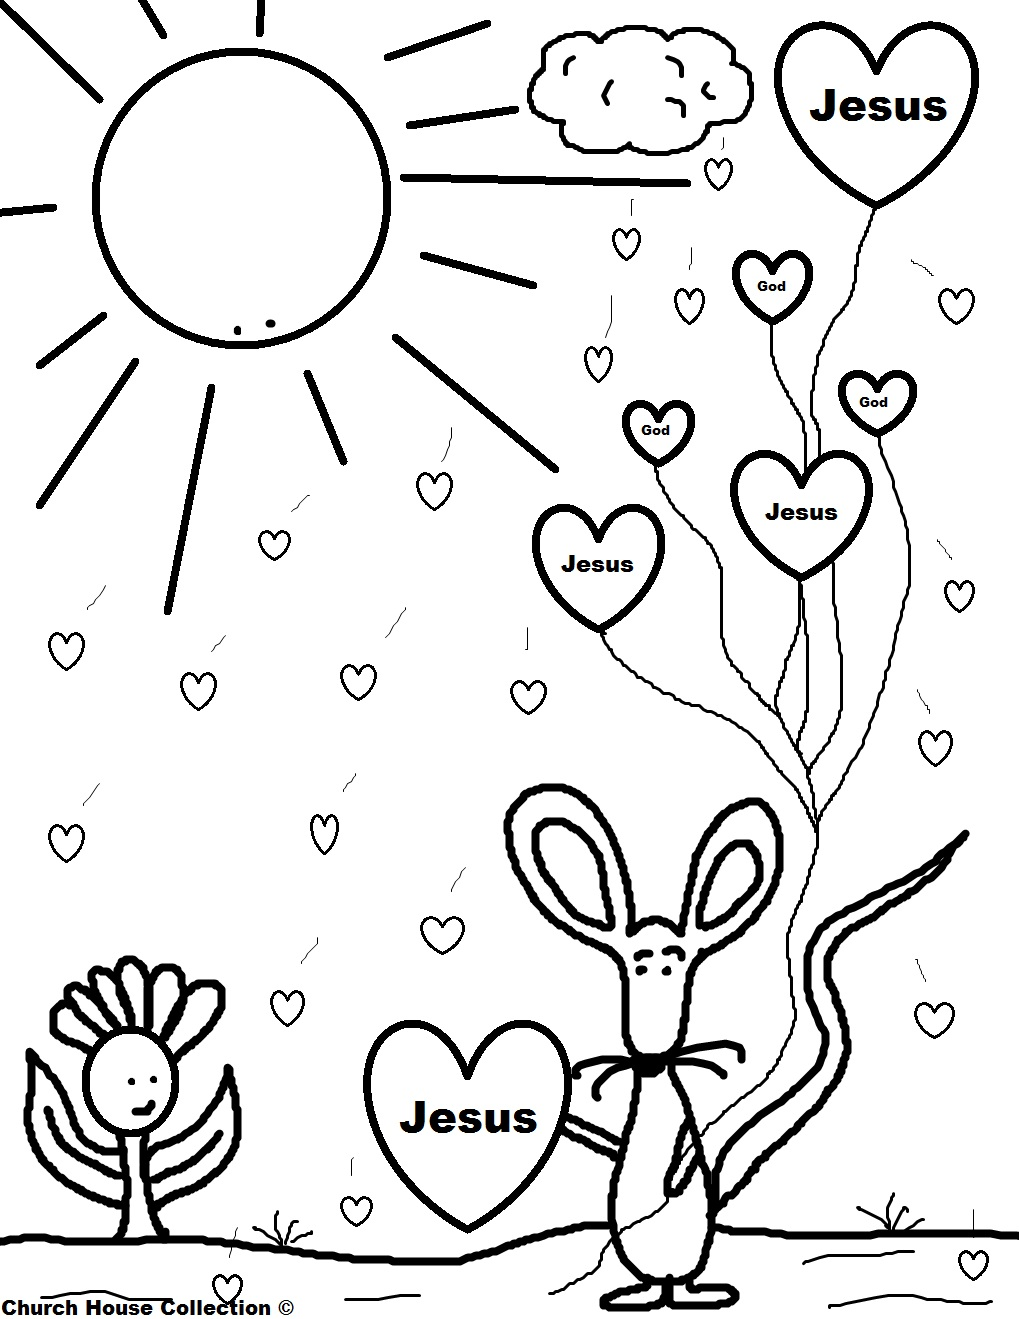 Fight Of Faith Bible Coloring | Sunday school coloring pages, Bible coloring,  Coloring pages | 1319x1019